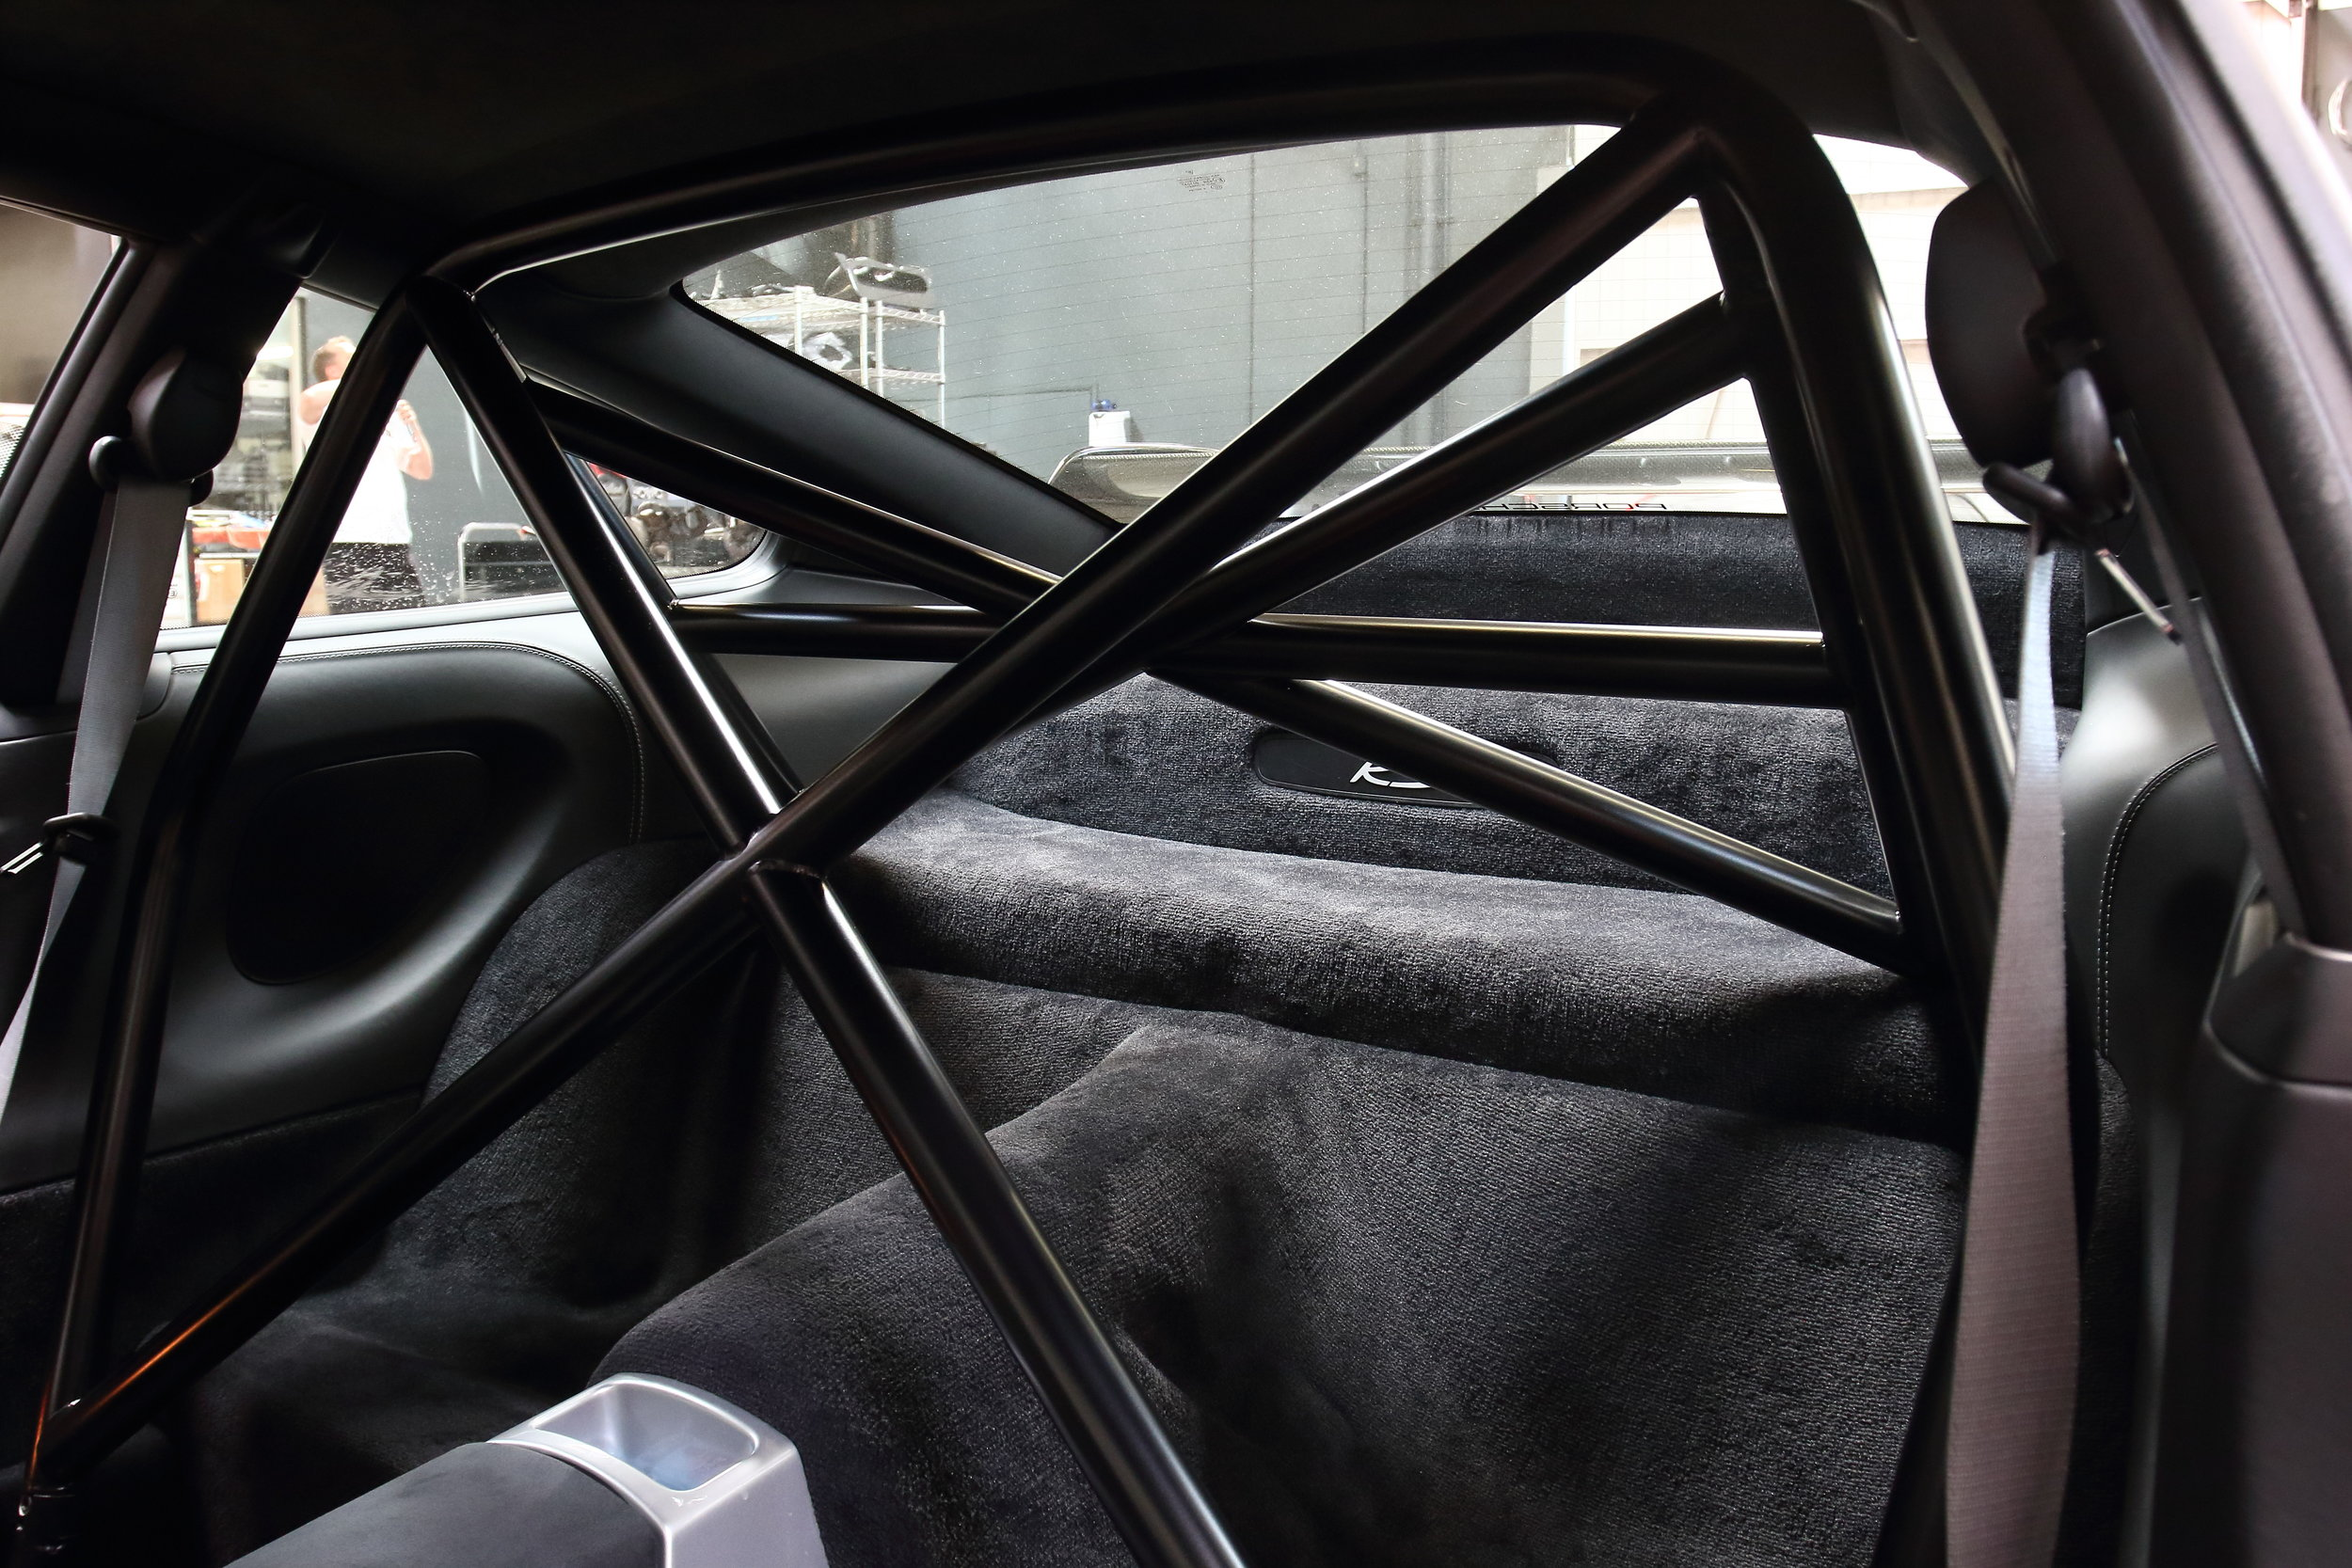 BBi Porsche 996/997 Roll Bar Installed Inside Vehicle